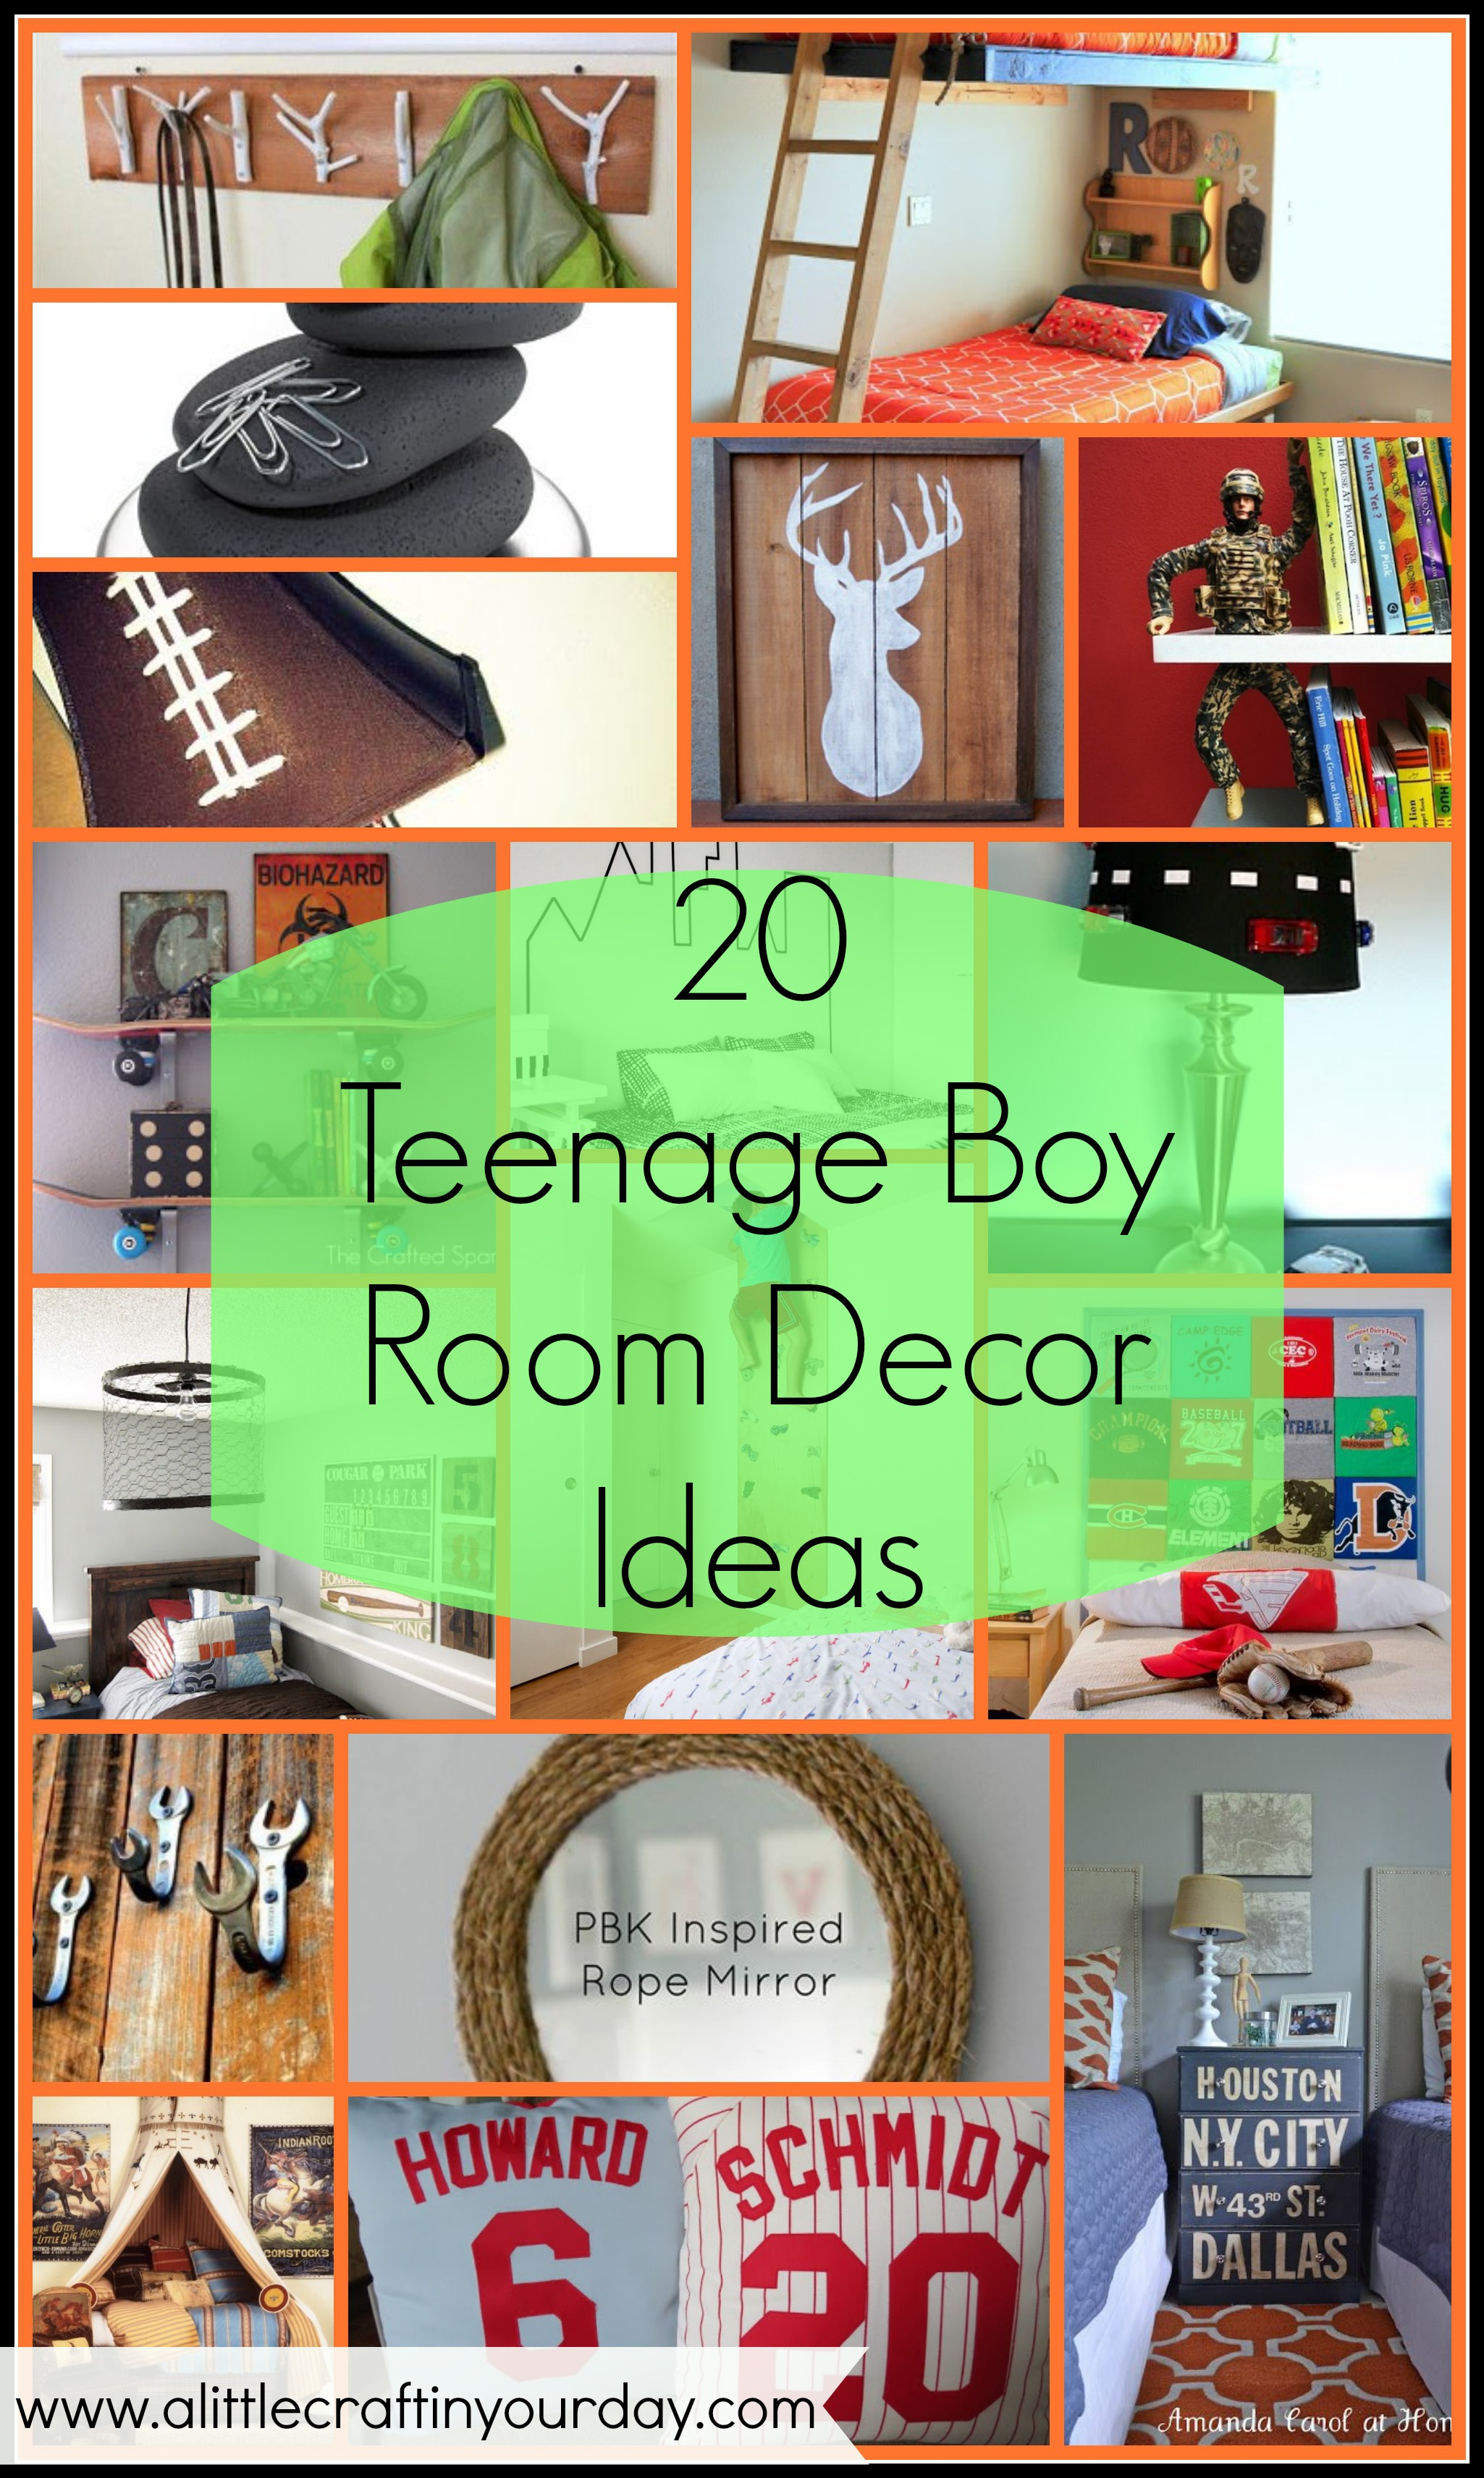 20 Teenage Boy Room Decor Ideas - A Little Craft In Your Day on futons for teen boys, luxury bedrooms for boys, bedrooms for teenagers boys, bedding teens boys, bedroom designs for boys room, bedroom ideas for boys room, bedroom painting ideas for teens,